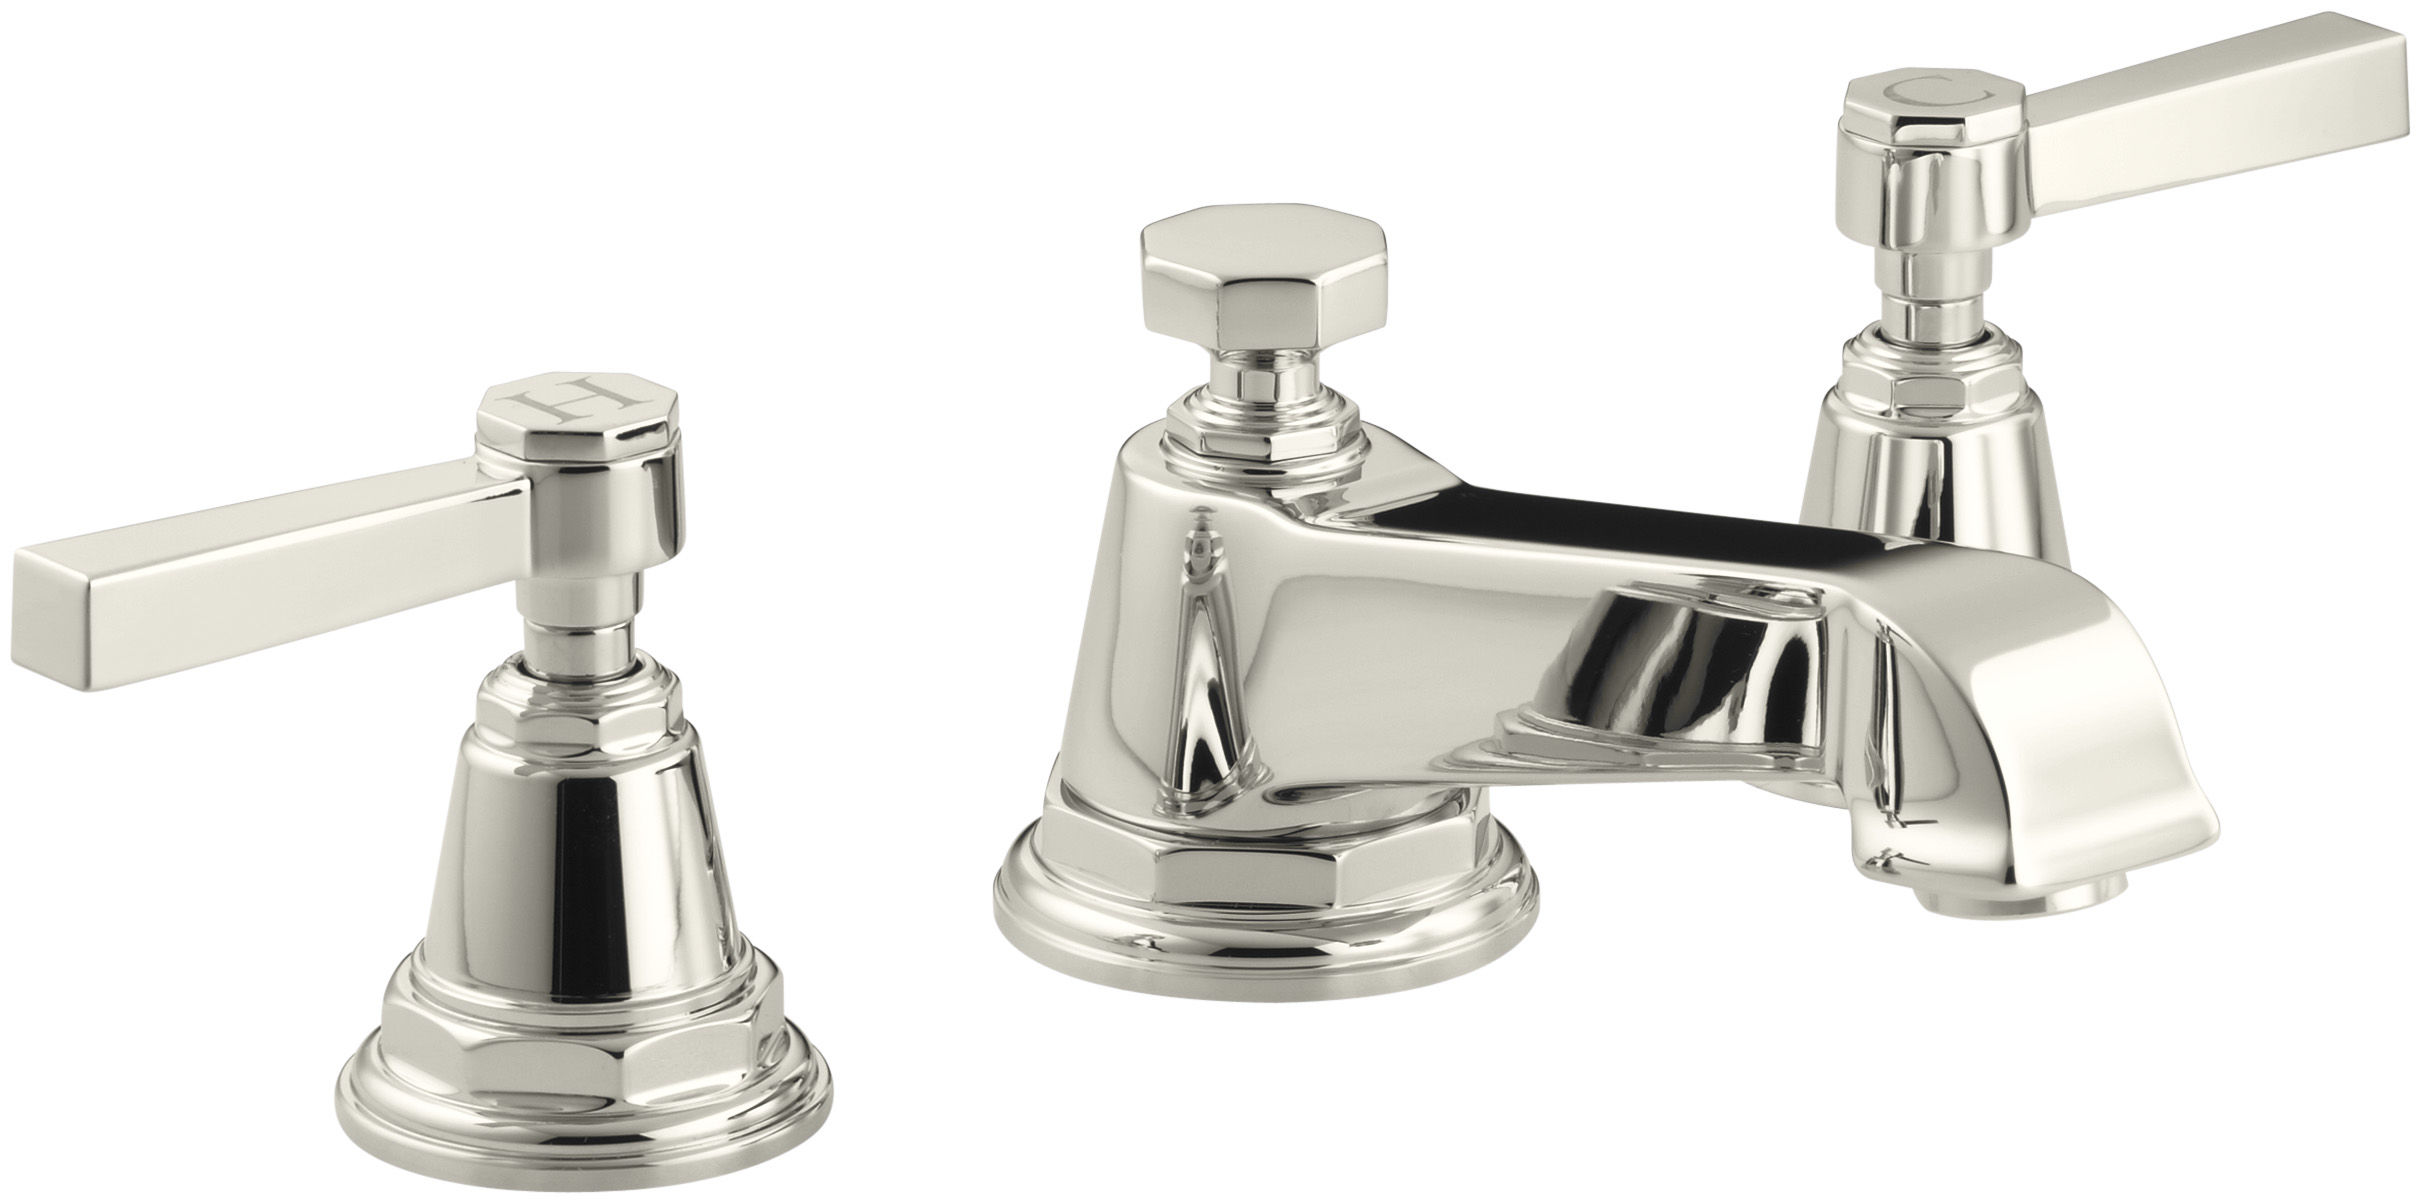 Kohler lavatory faucets Widespread Kohler K131324acp Faucet Direct Kohler K131324acp Polished Chrome Double Handle Widespread